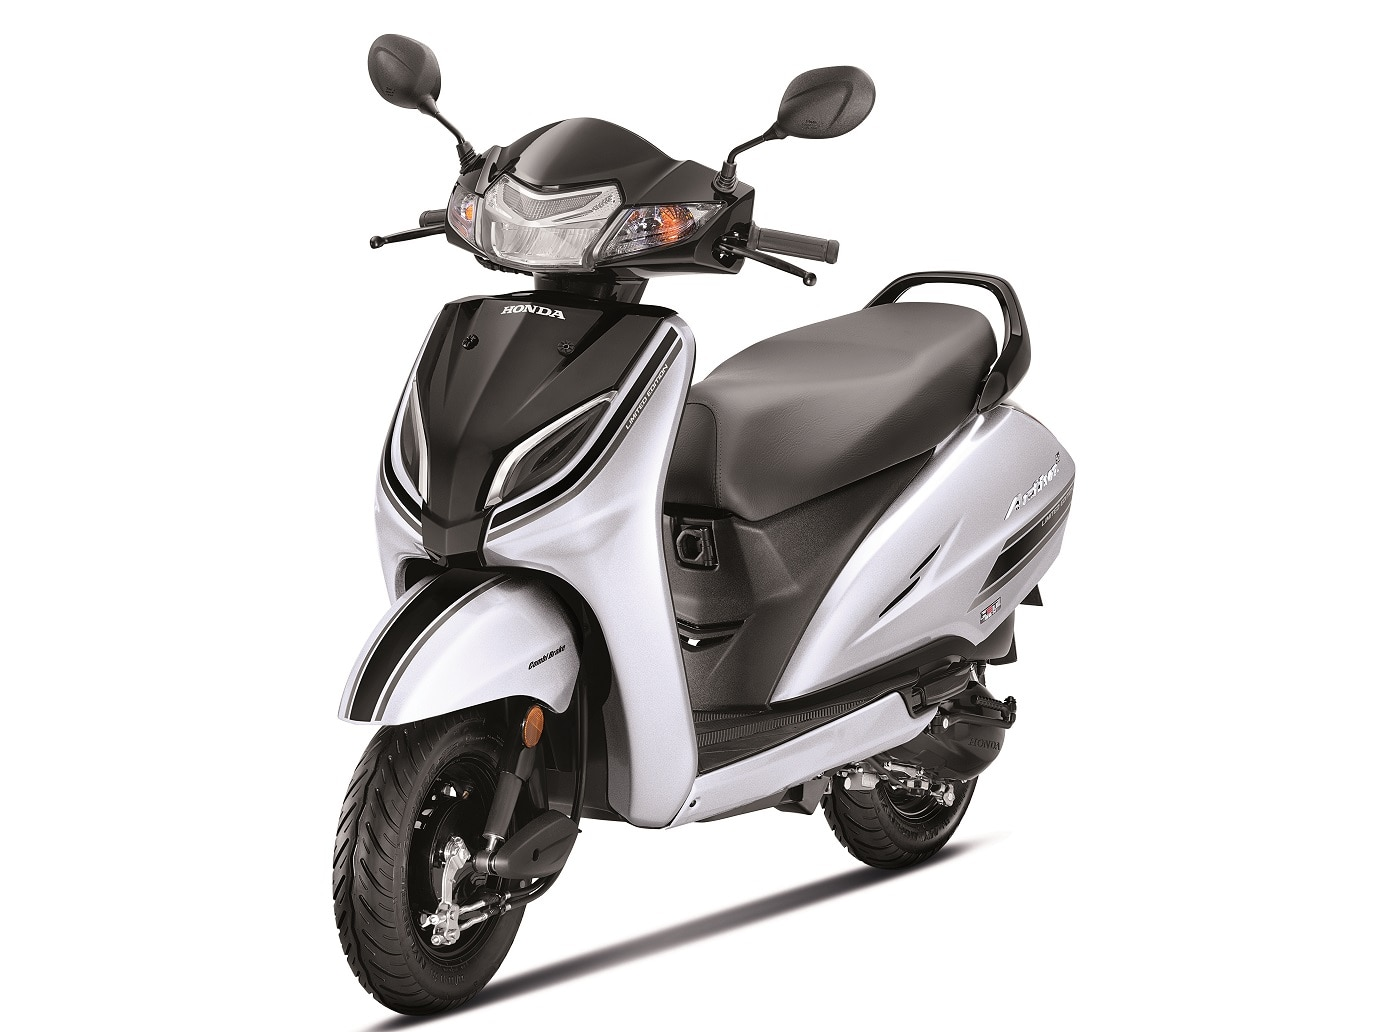 Honda Activa Sells 1.4 Million Units During April-September, Claims Top Spot